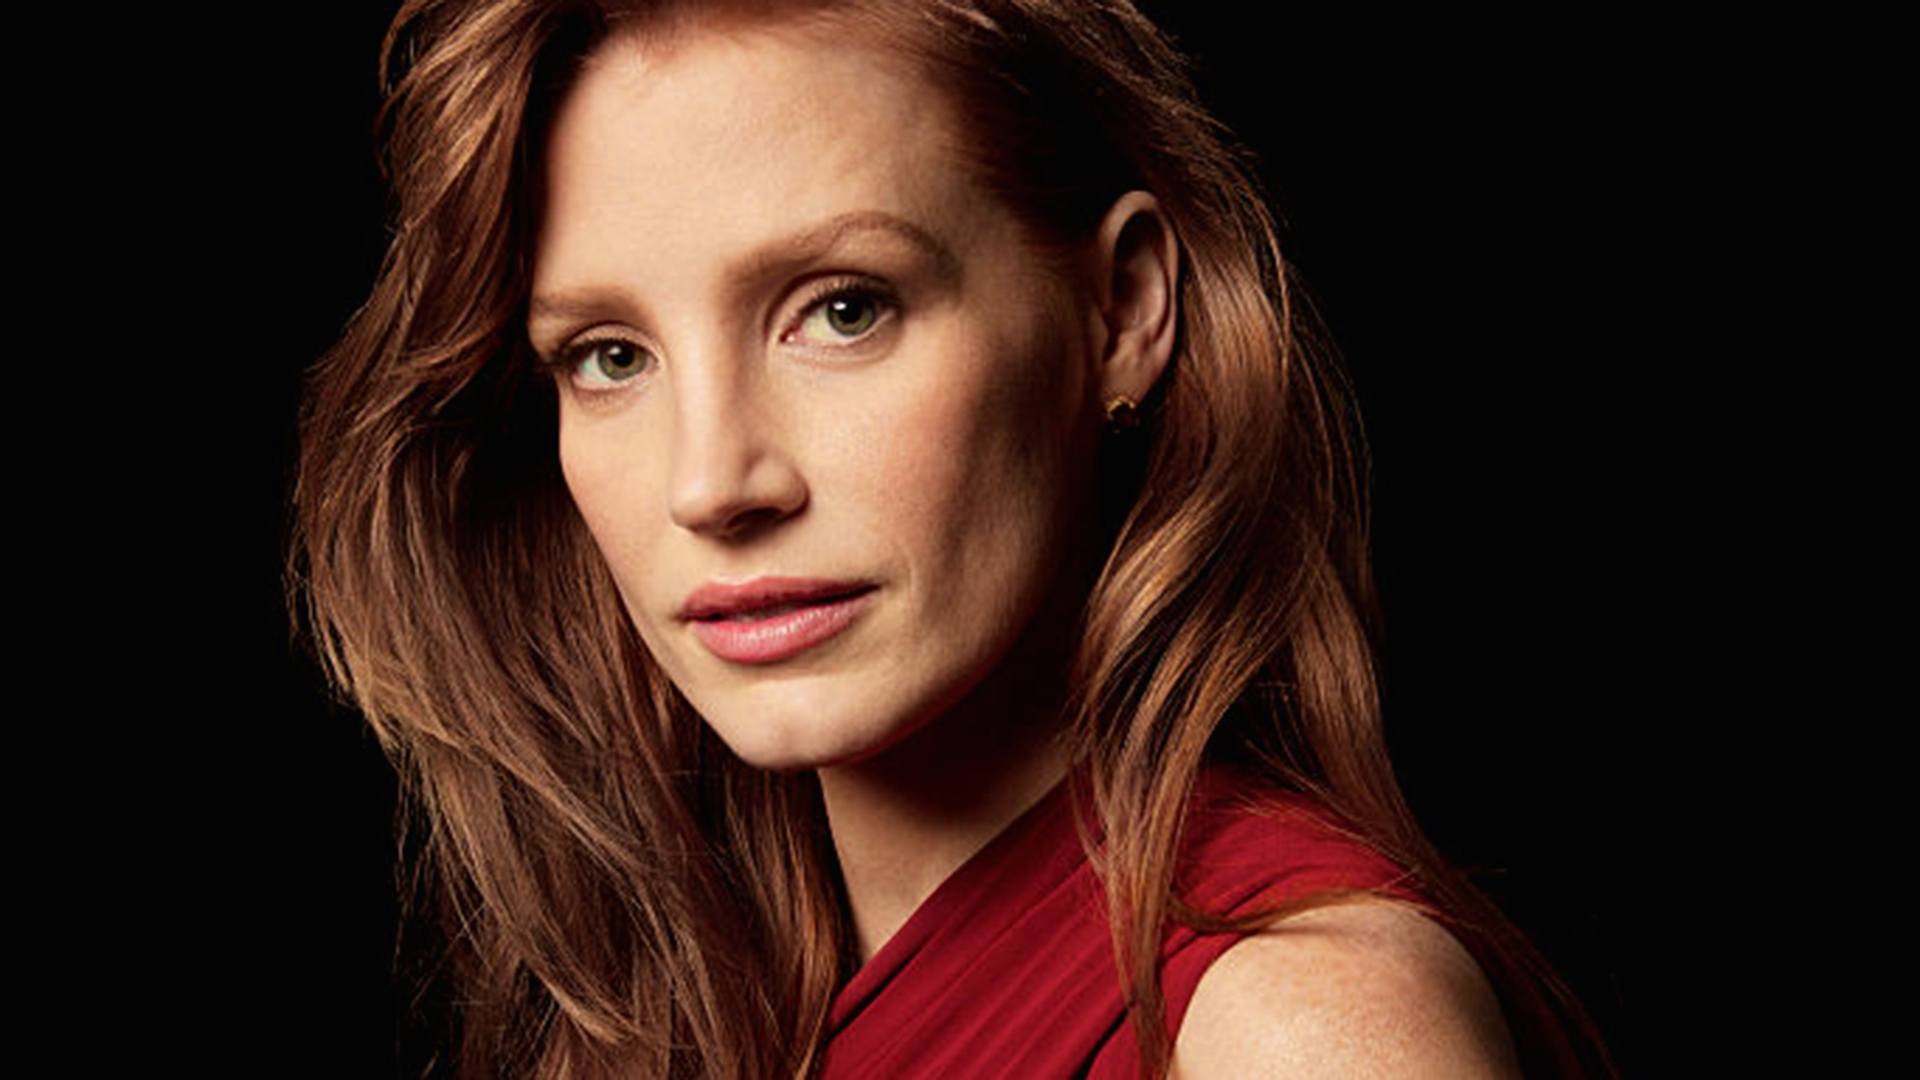 1920x1080 - Jessica Chastain Wallpapers 12